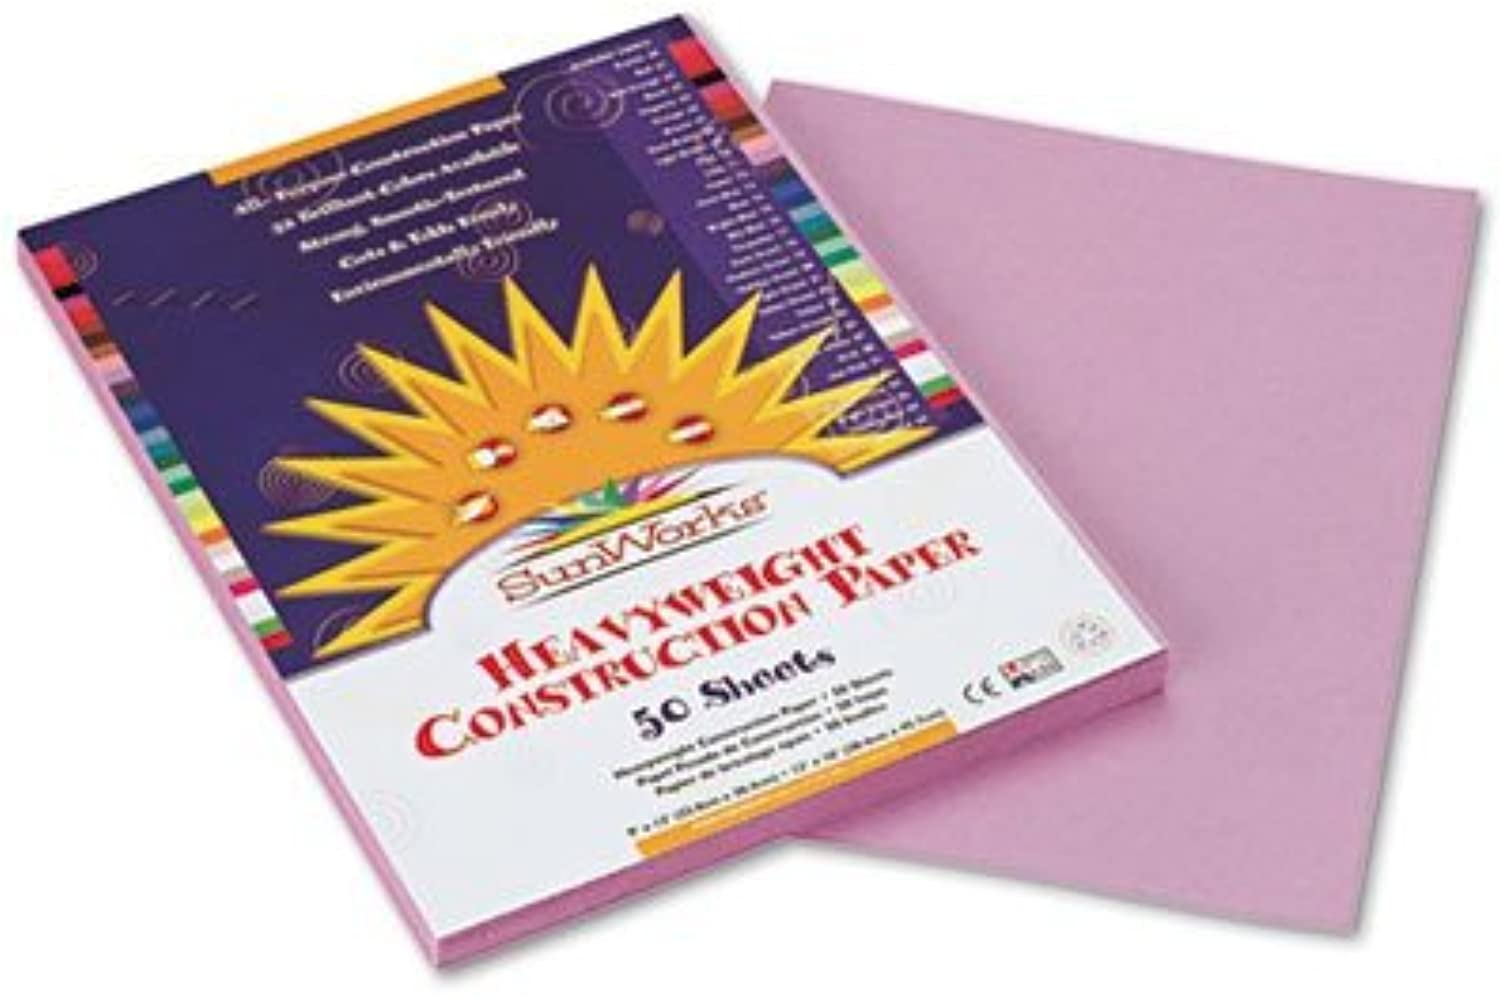 Construction Paper, 58 lbs., 9 x 12, purplec, 50 Sheets Pack, Sold as 1 Package by Sunworks